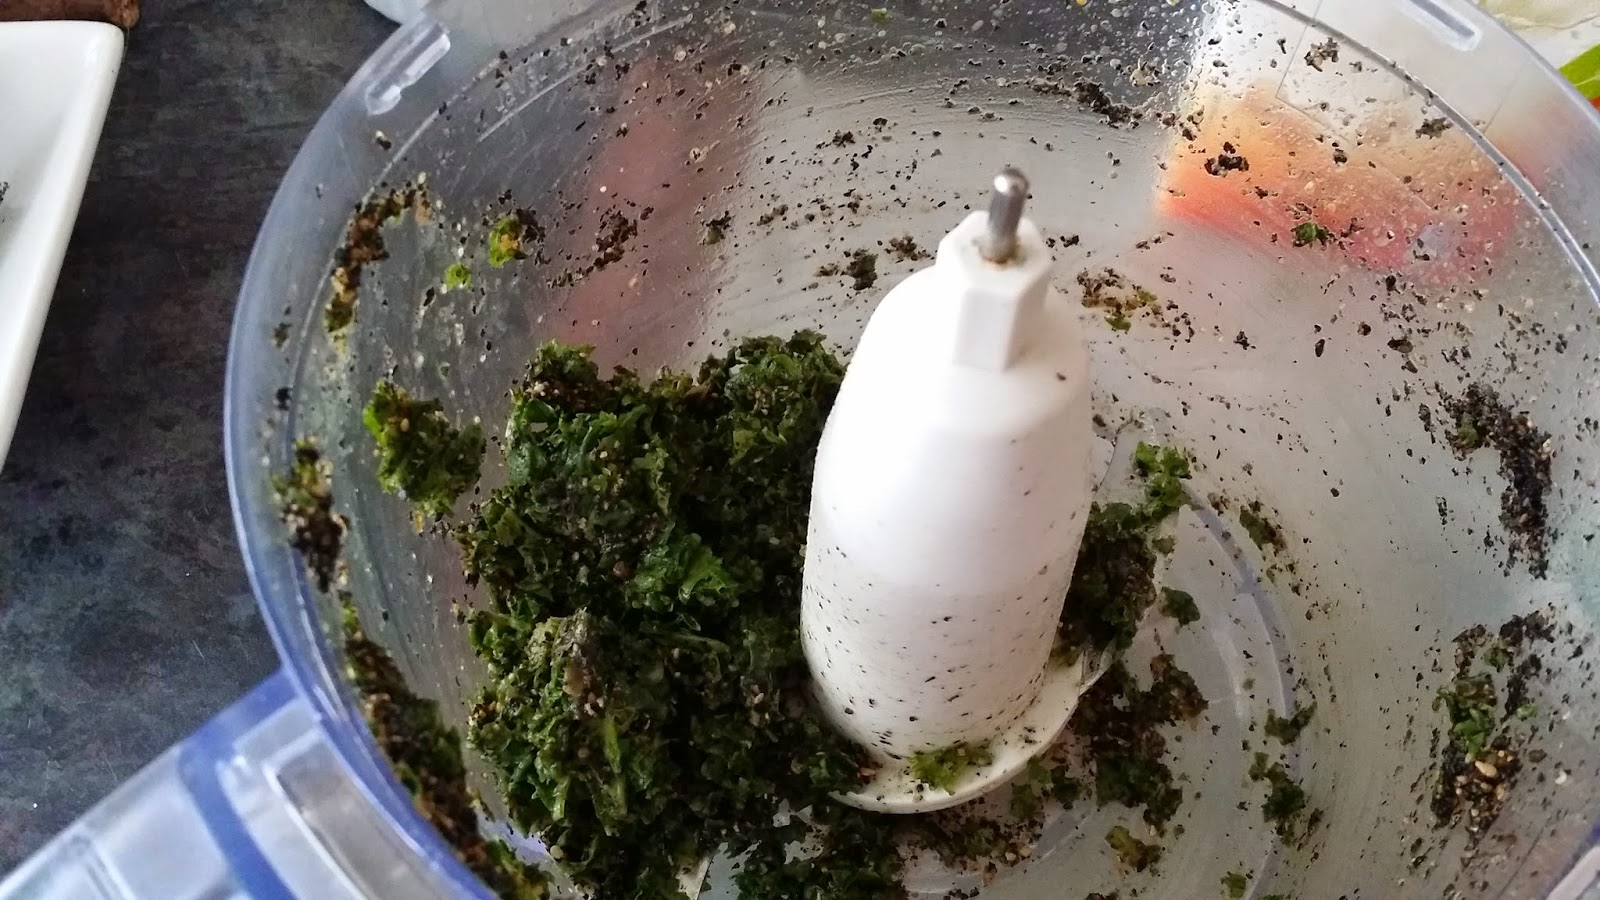 http://kitchentakeovers.blogspot.co.uk/2014/10/black-sesame-seed-and-kale-smoothie.html?m=1